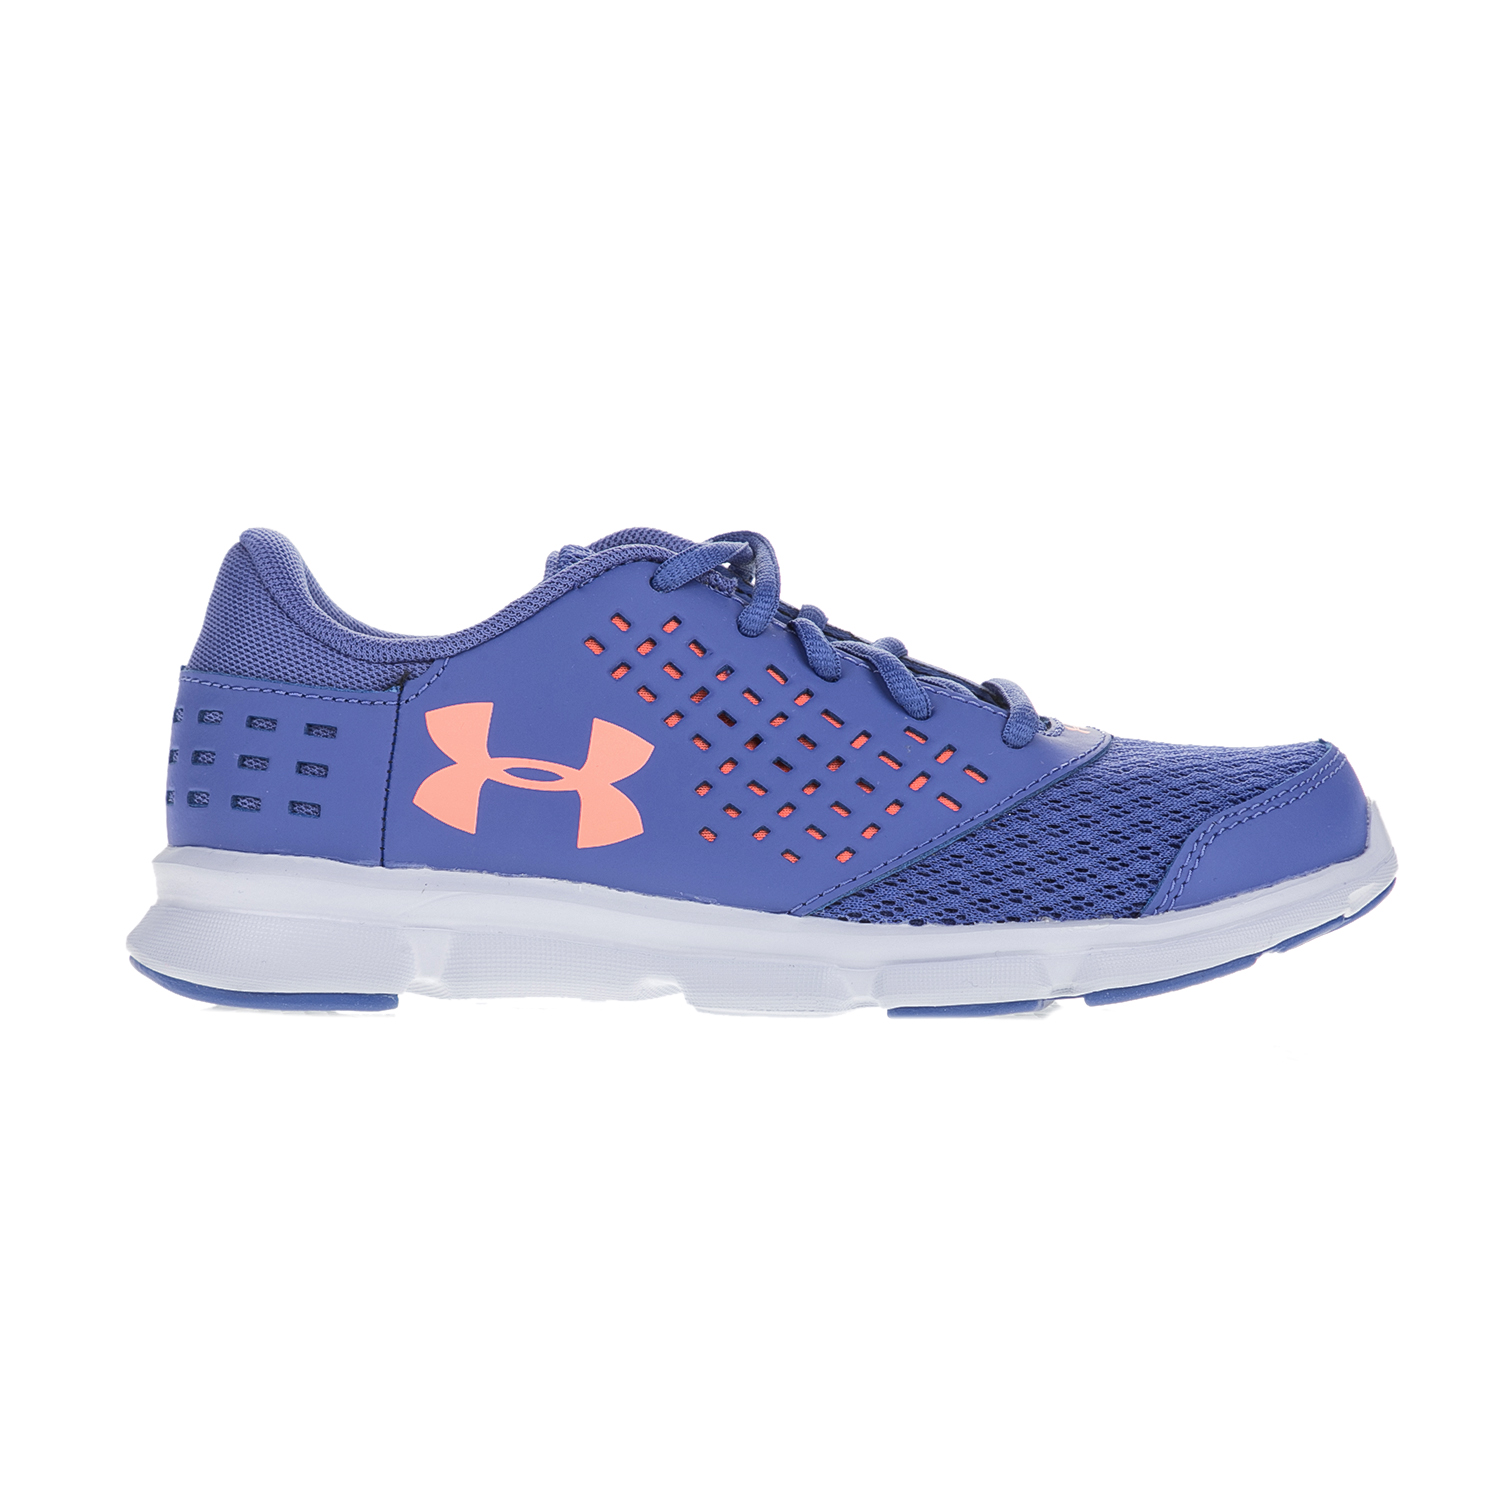 UNDER ARMOUR – Κοριτσίστικα αθλητικά παπούτσια UNDER ARMOUR GPS Rave RN μοβ